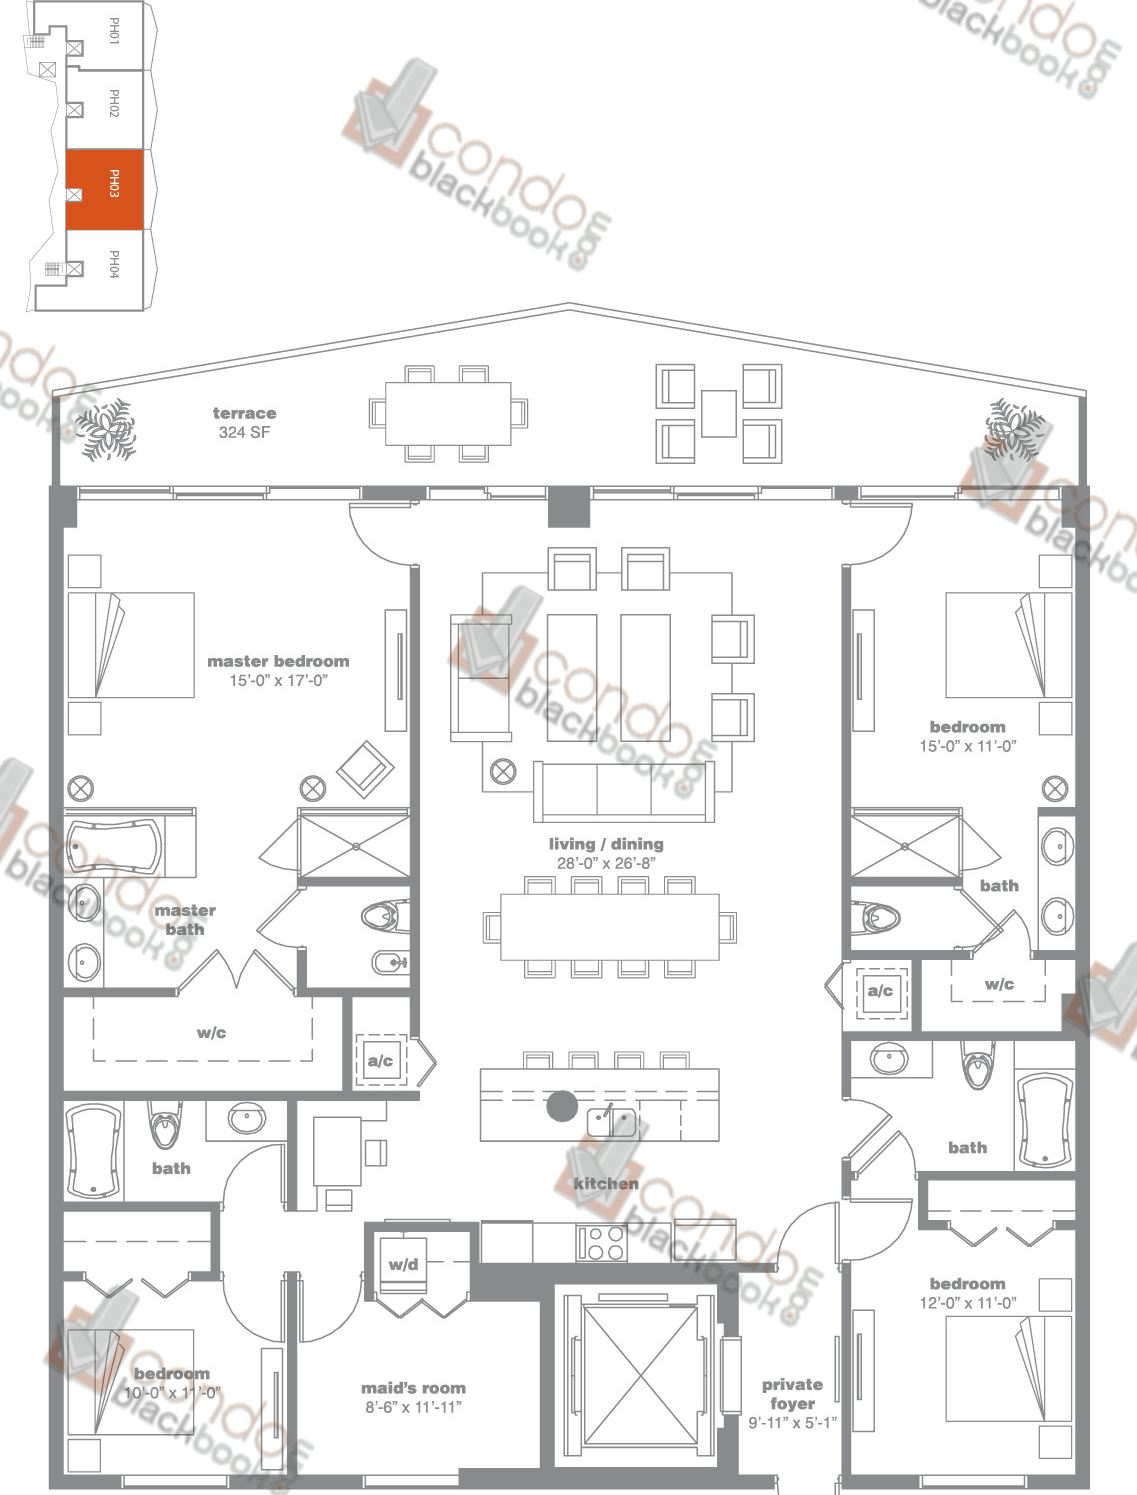 Floor plan for Icon Bay Edgewater Miami, model PH03, line 03, 4/4 + Maid's Room bedrooms, 2,670 sq ft